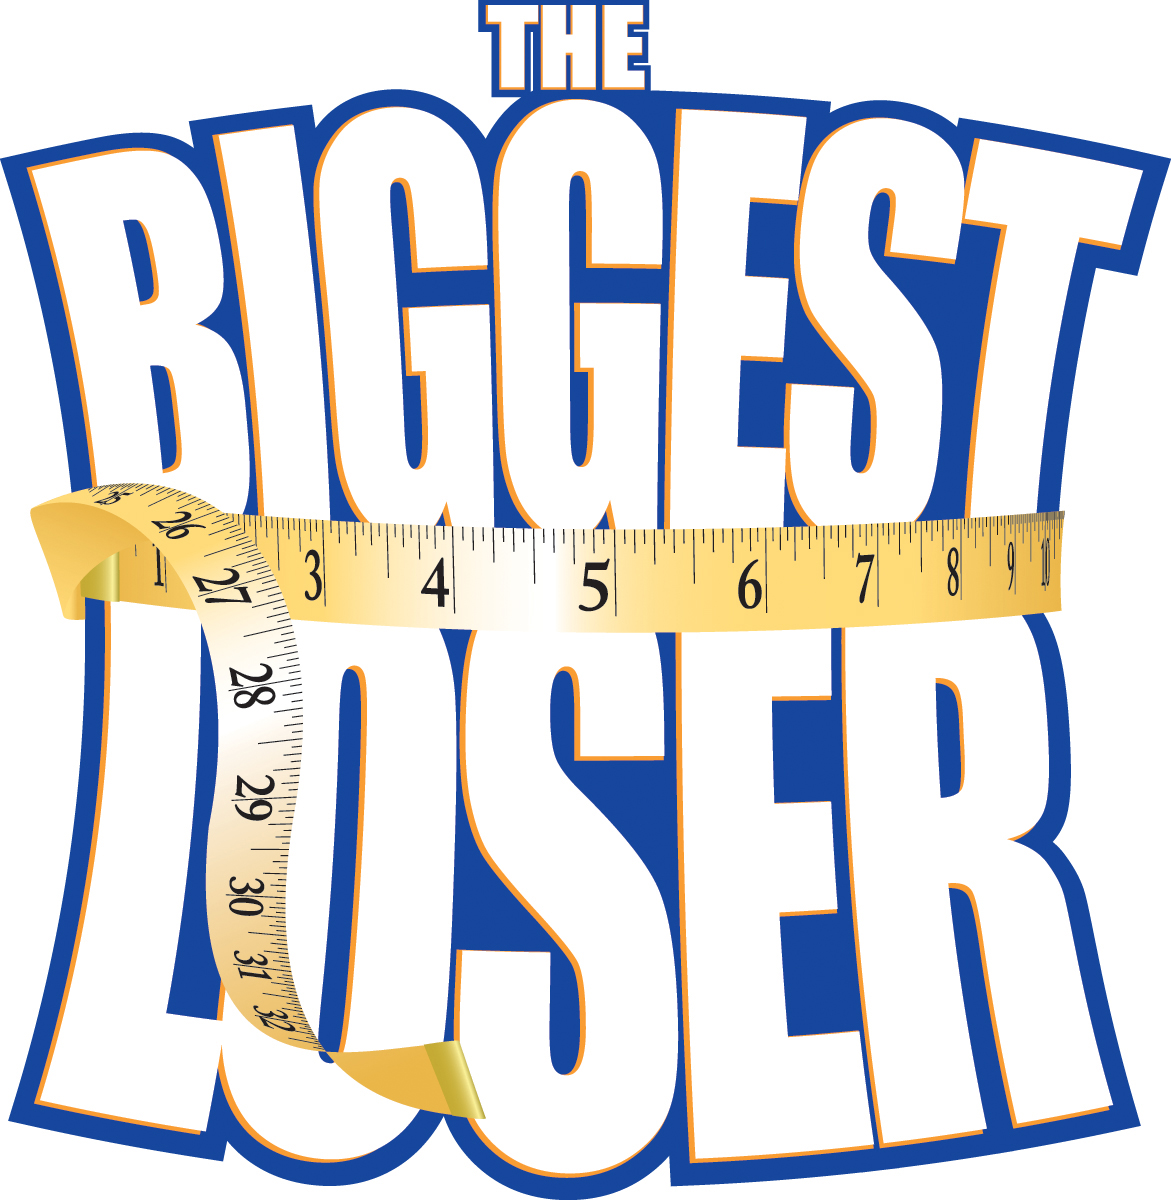 Free clipart images quotes winners and losers. Biggest loser foodfoodbodybody